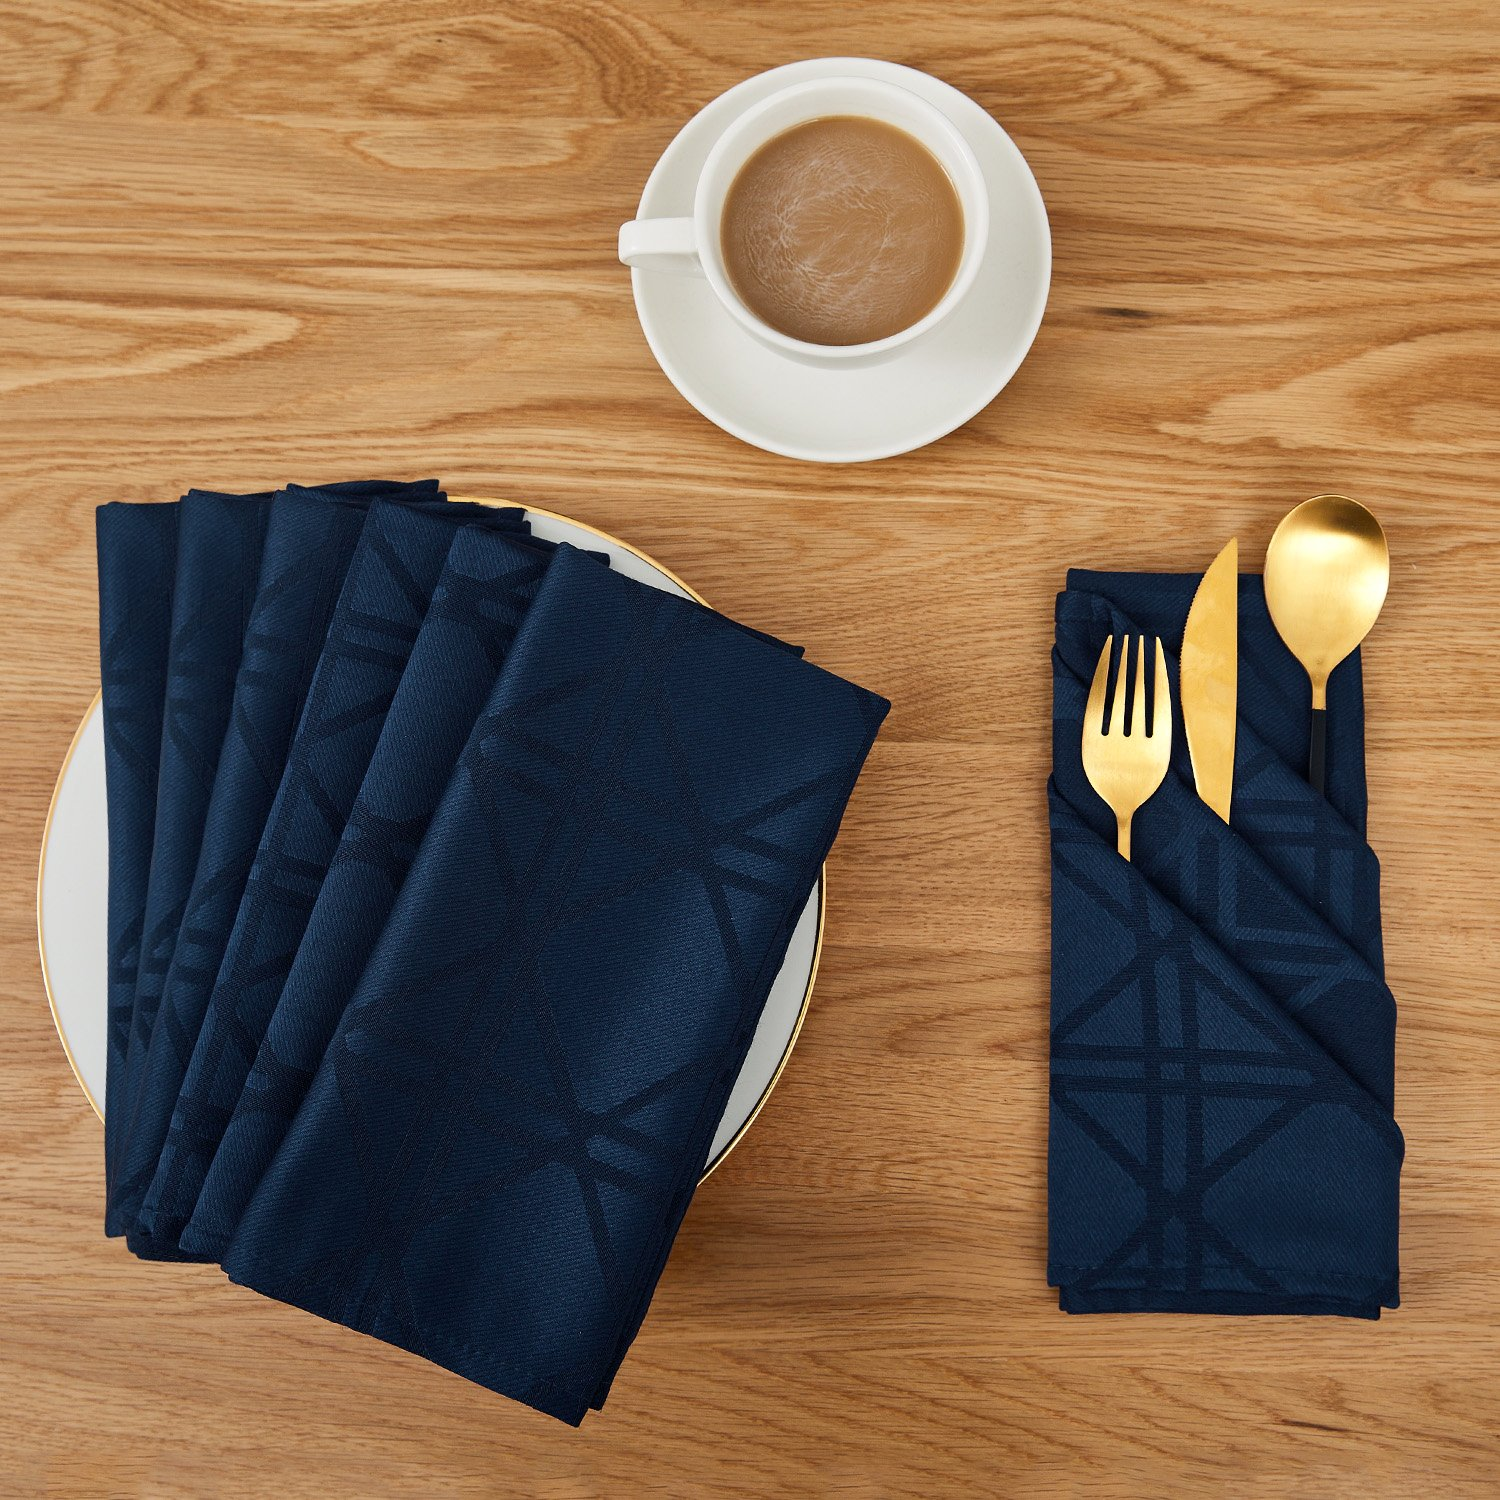 Deconovo Soft Jacquard Damask Dinner Cloth Napkins with Geometric Patterns 18 x 18 inch Stain and Spillproof Smooth Luxury Serviette for Banquets, Weddings, Family Gatherings Set of 6 Navy Blue